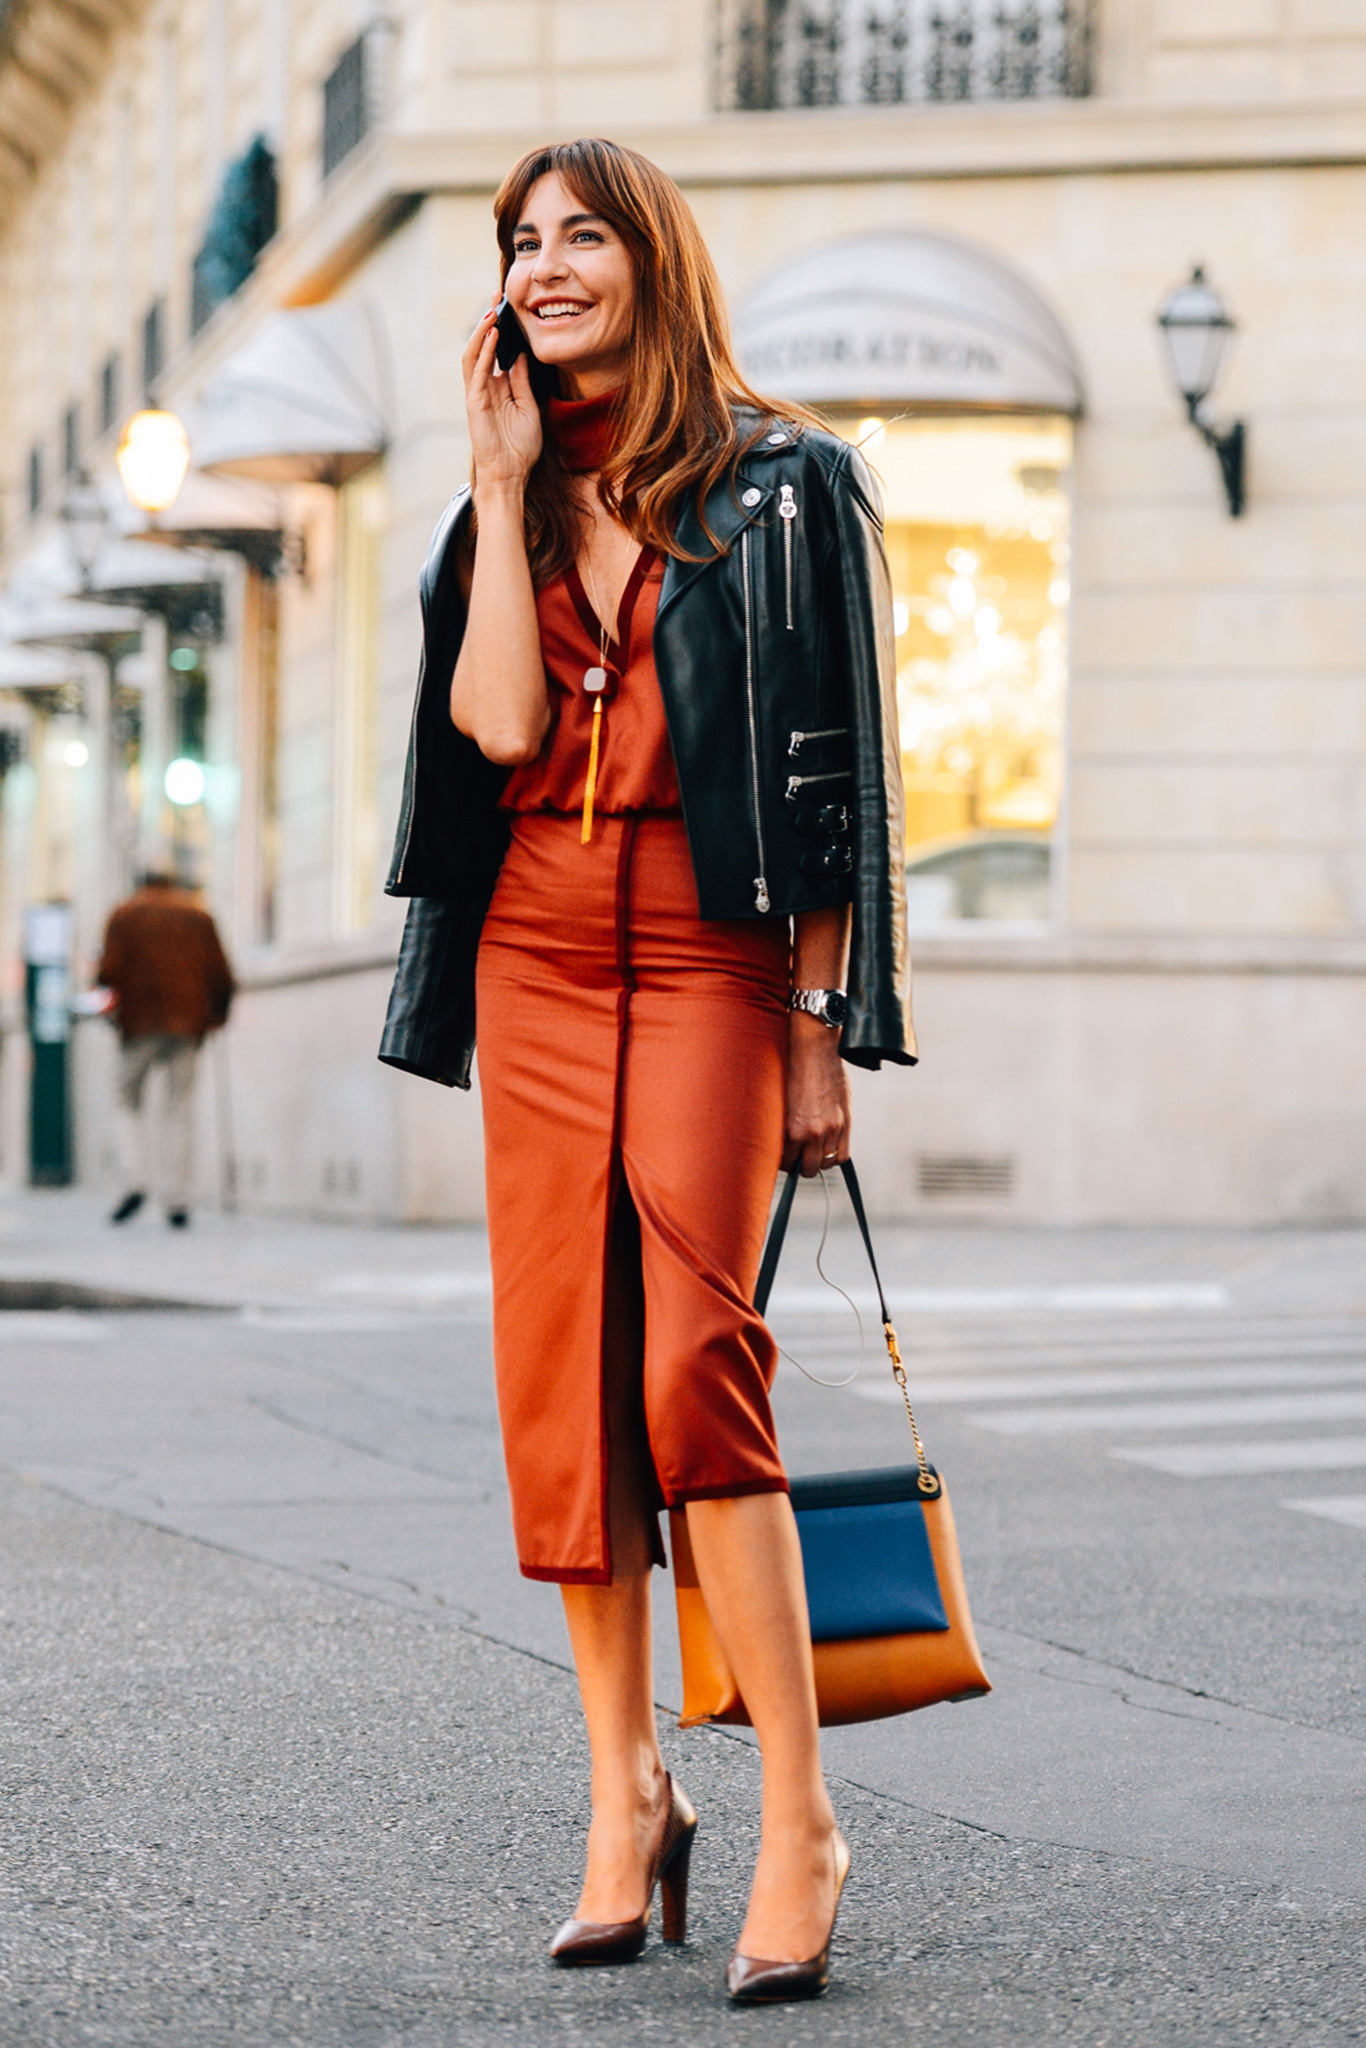 pencil skirt + leather jacket